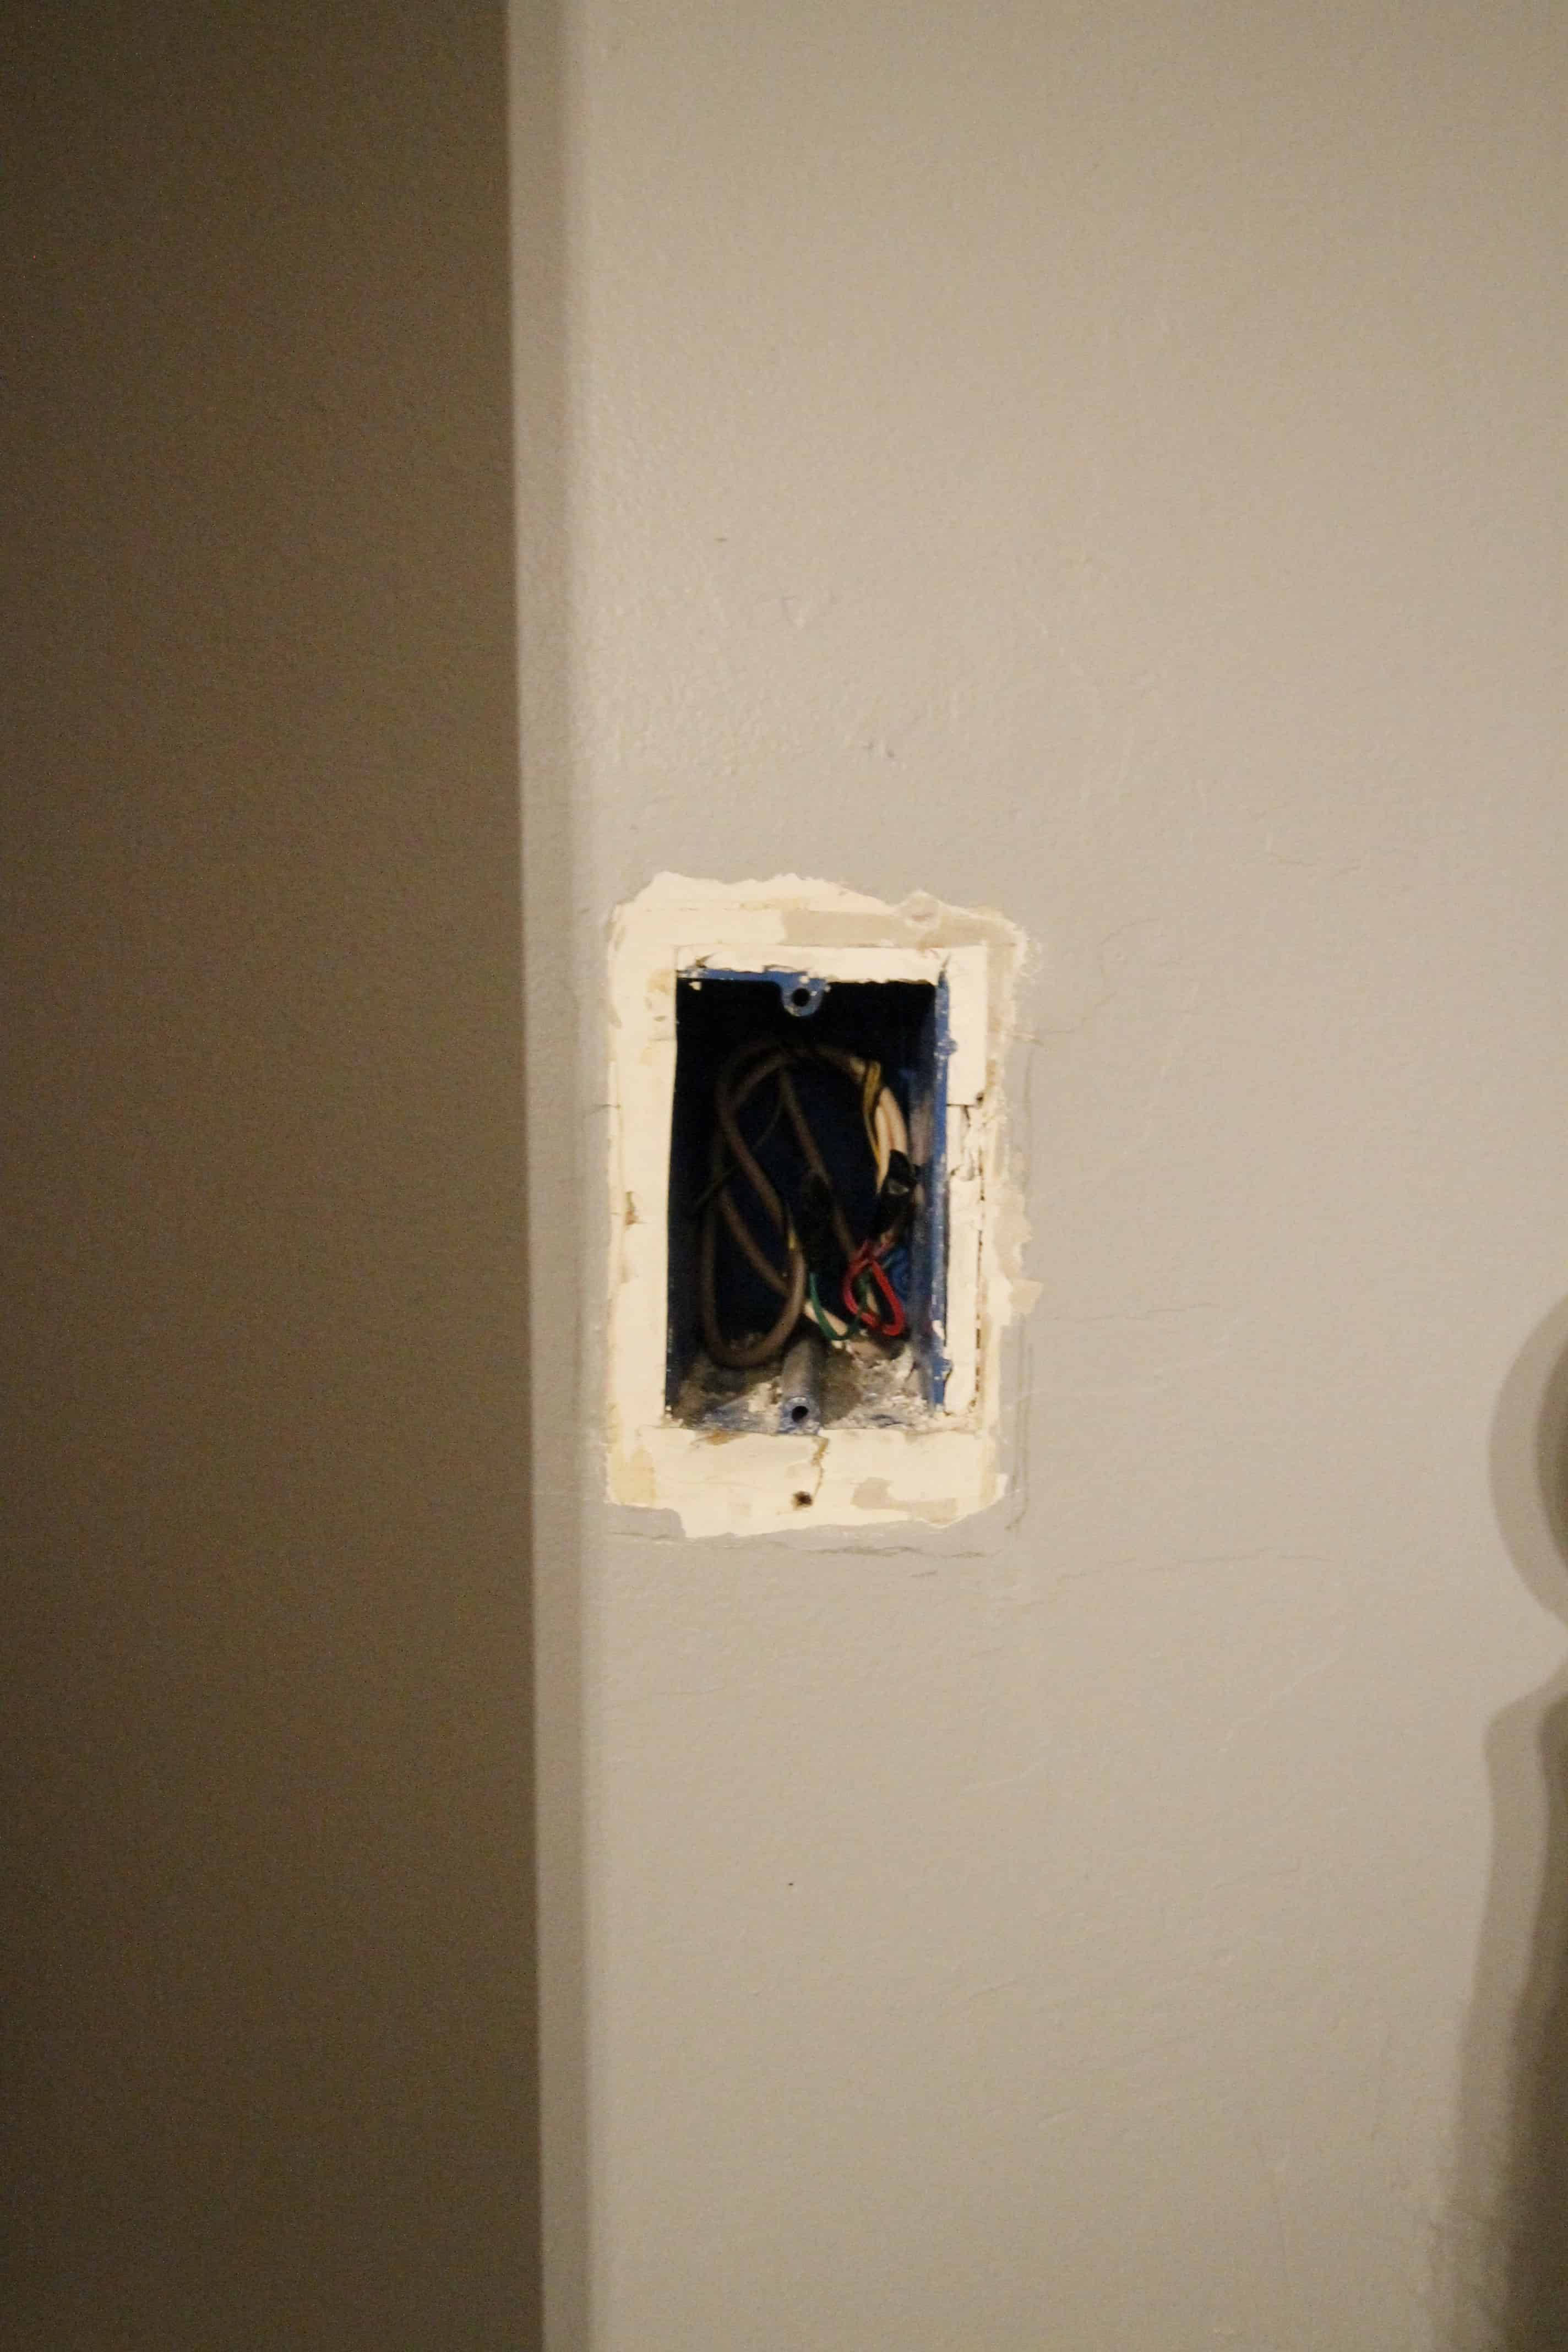 Phone Jack Wires Exposed Simple Wiring Diagram Site Plug How To Remove A Patch The Drywall Telephone Wall